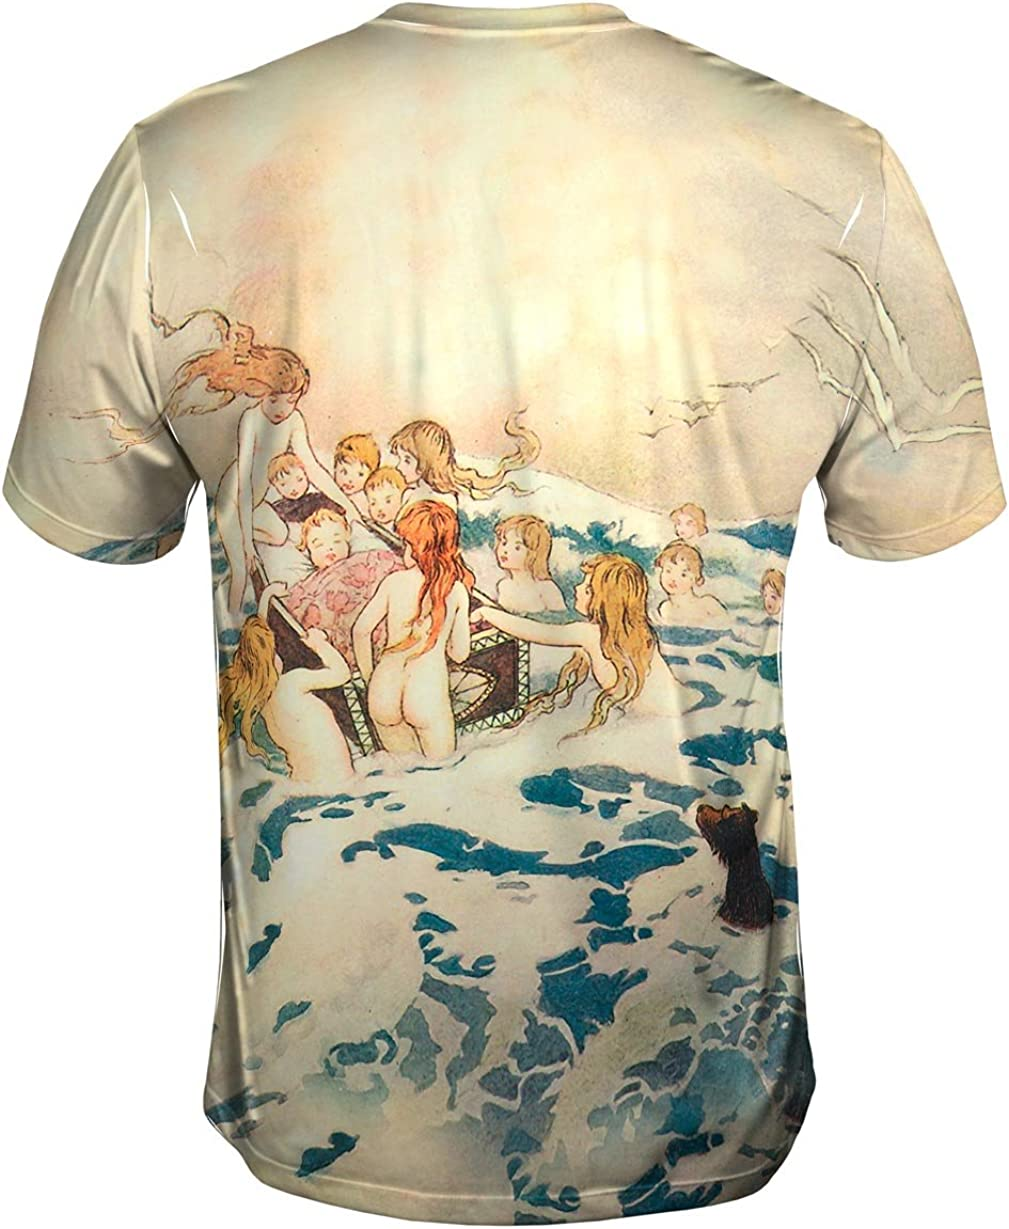 "New Kids Childrens Tshirt X Warwick Goble /""Mermaid Octopus Sailing/"" Yizzam"